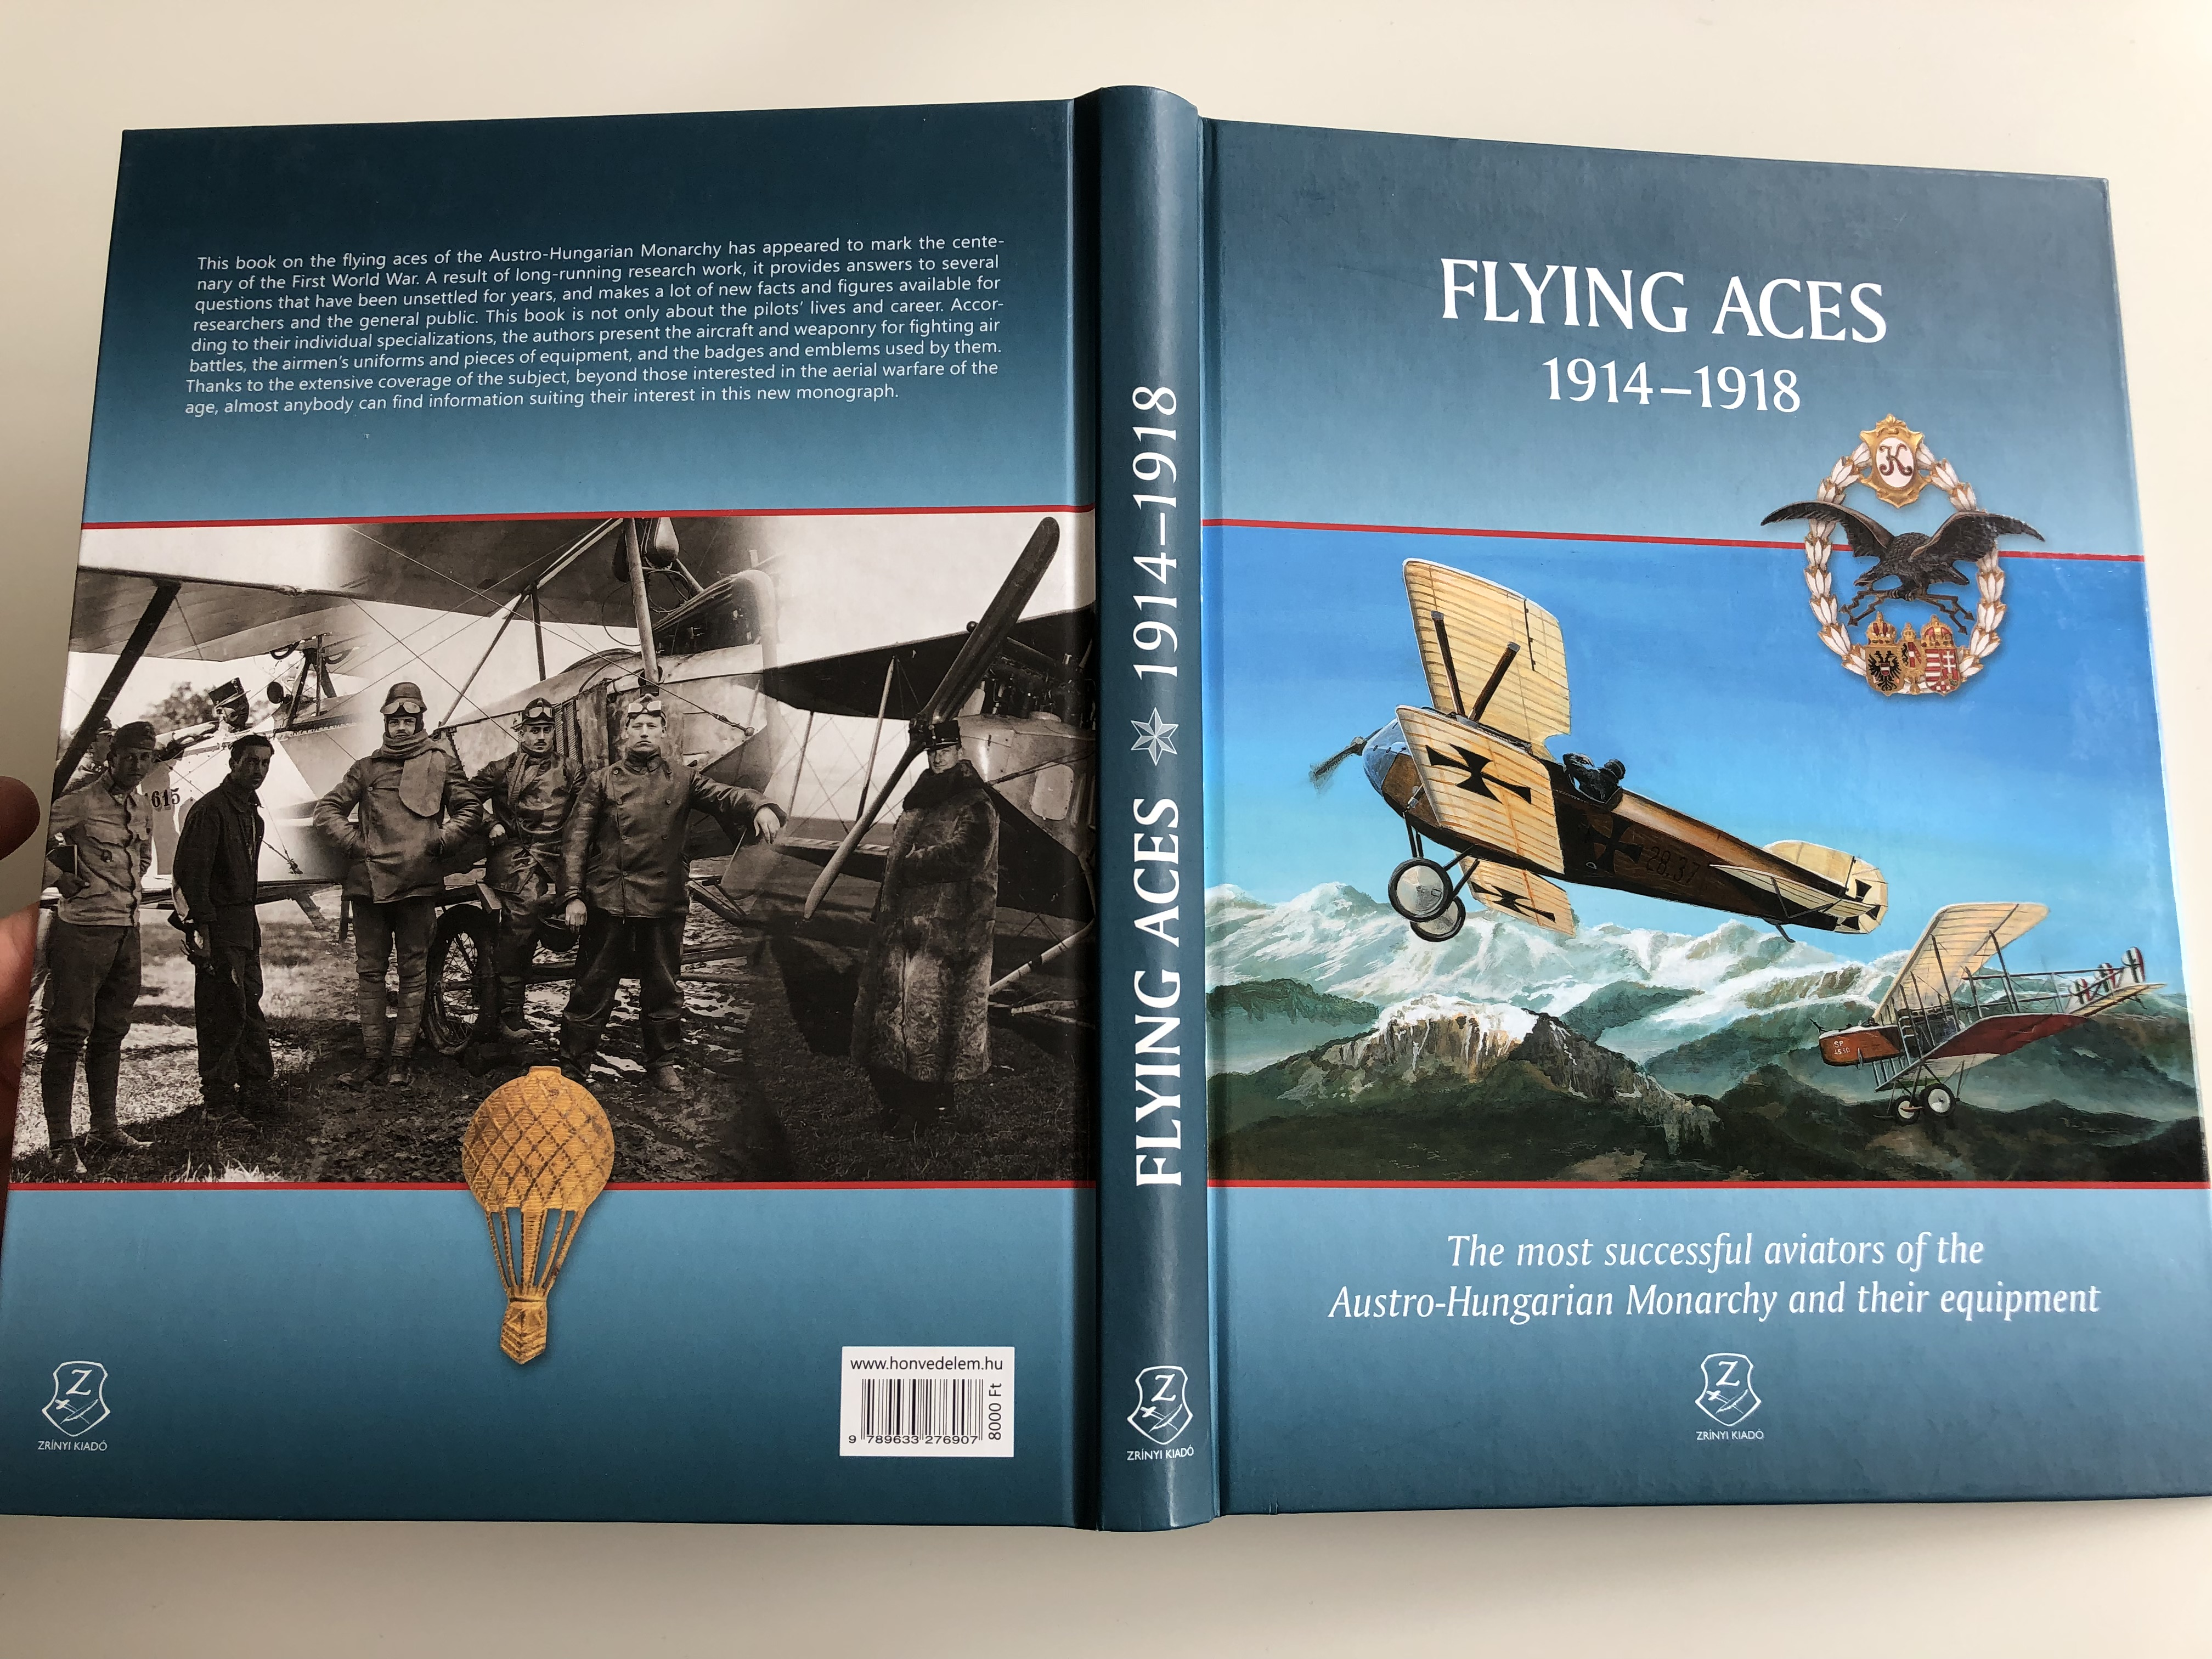 flying-aces-1914-1918-the-most-successful-aviators-of-the-austro-hungarian-monarchy-and-their-equipment-hardcover-2016-hm-zr-nyi-kiad-24-.jpg